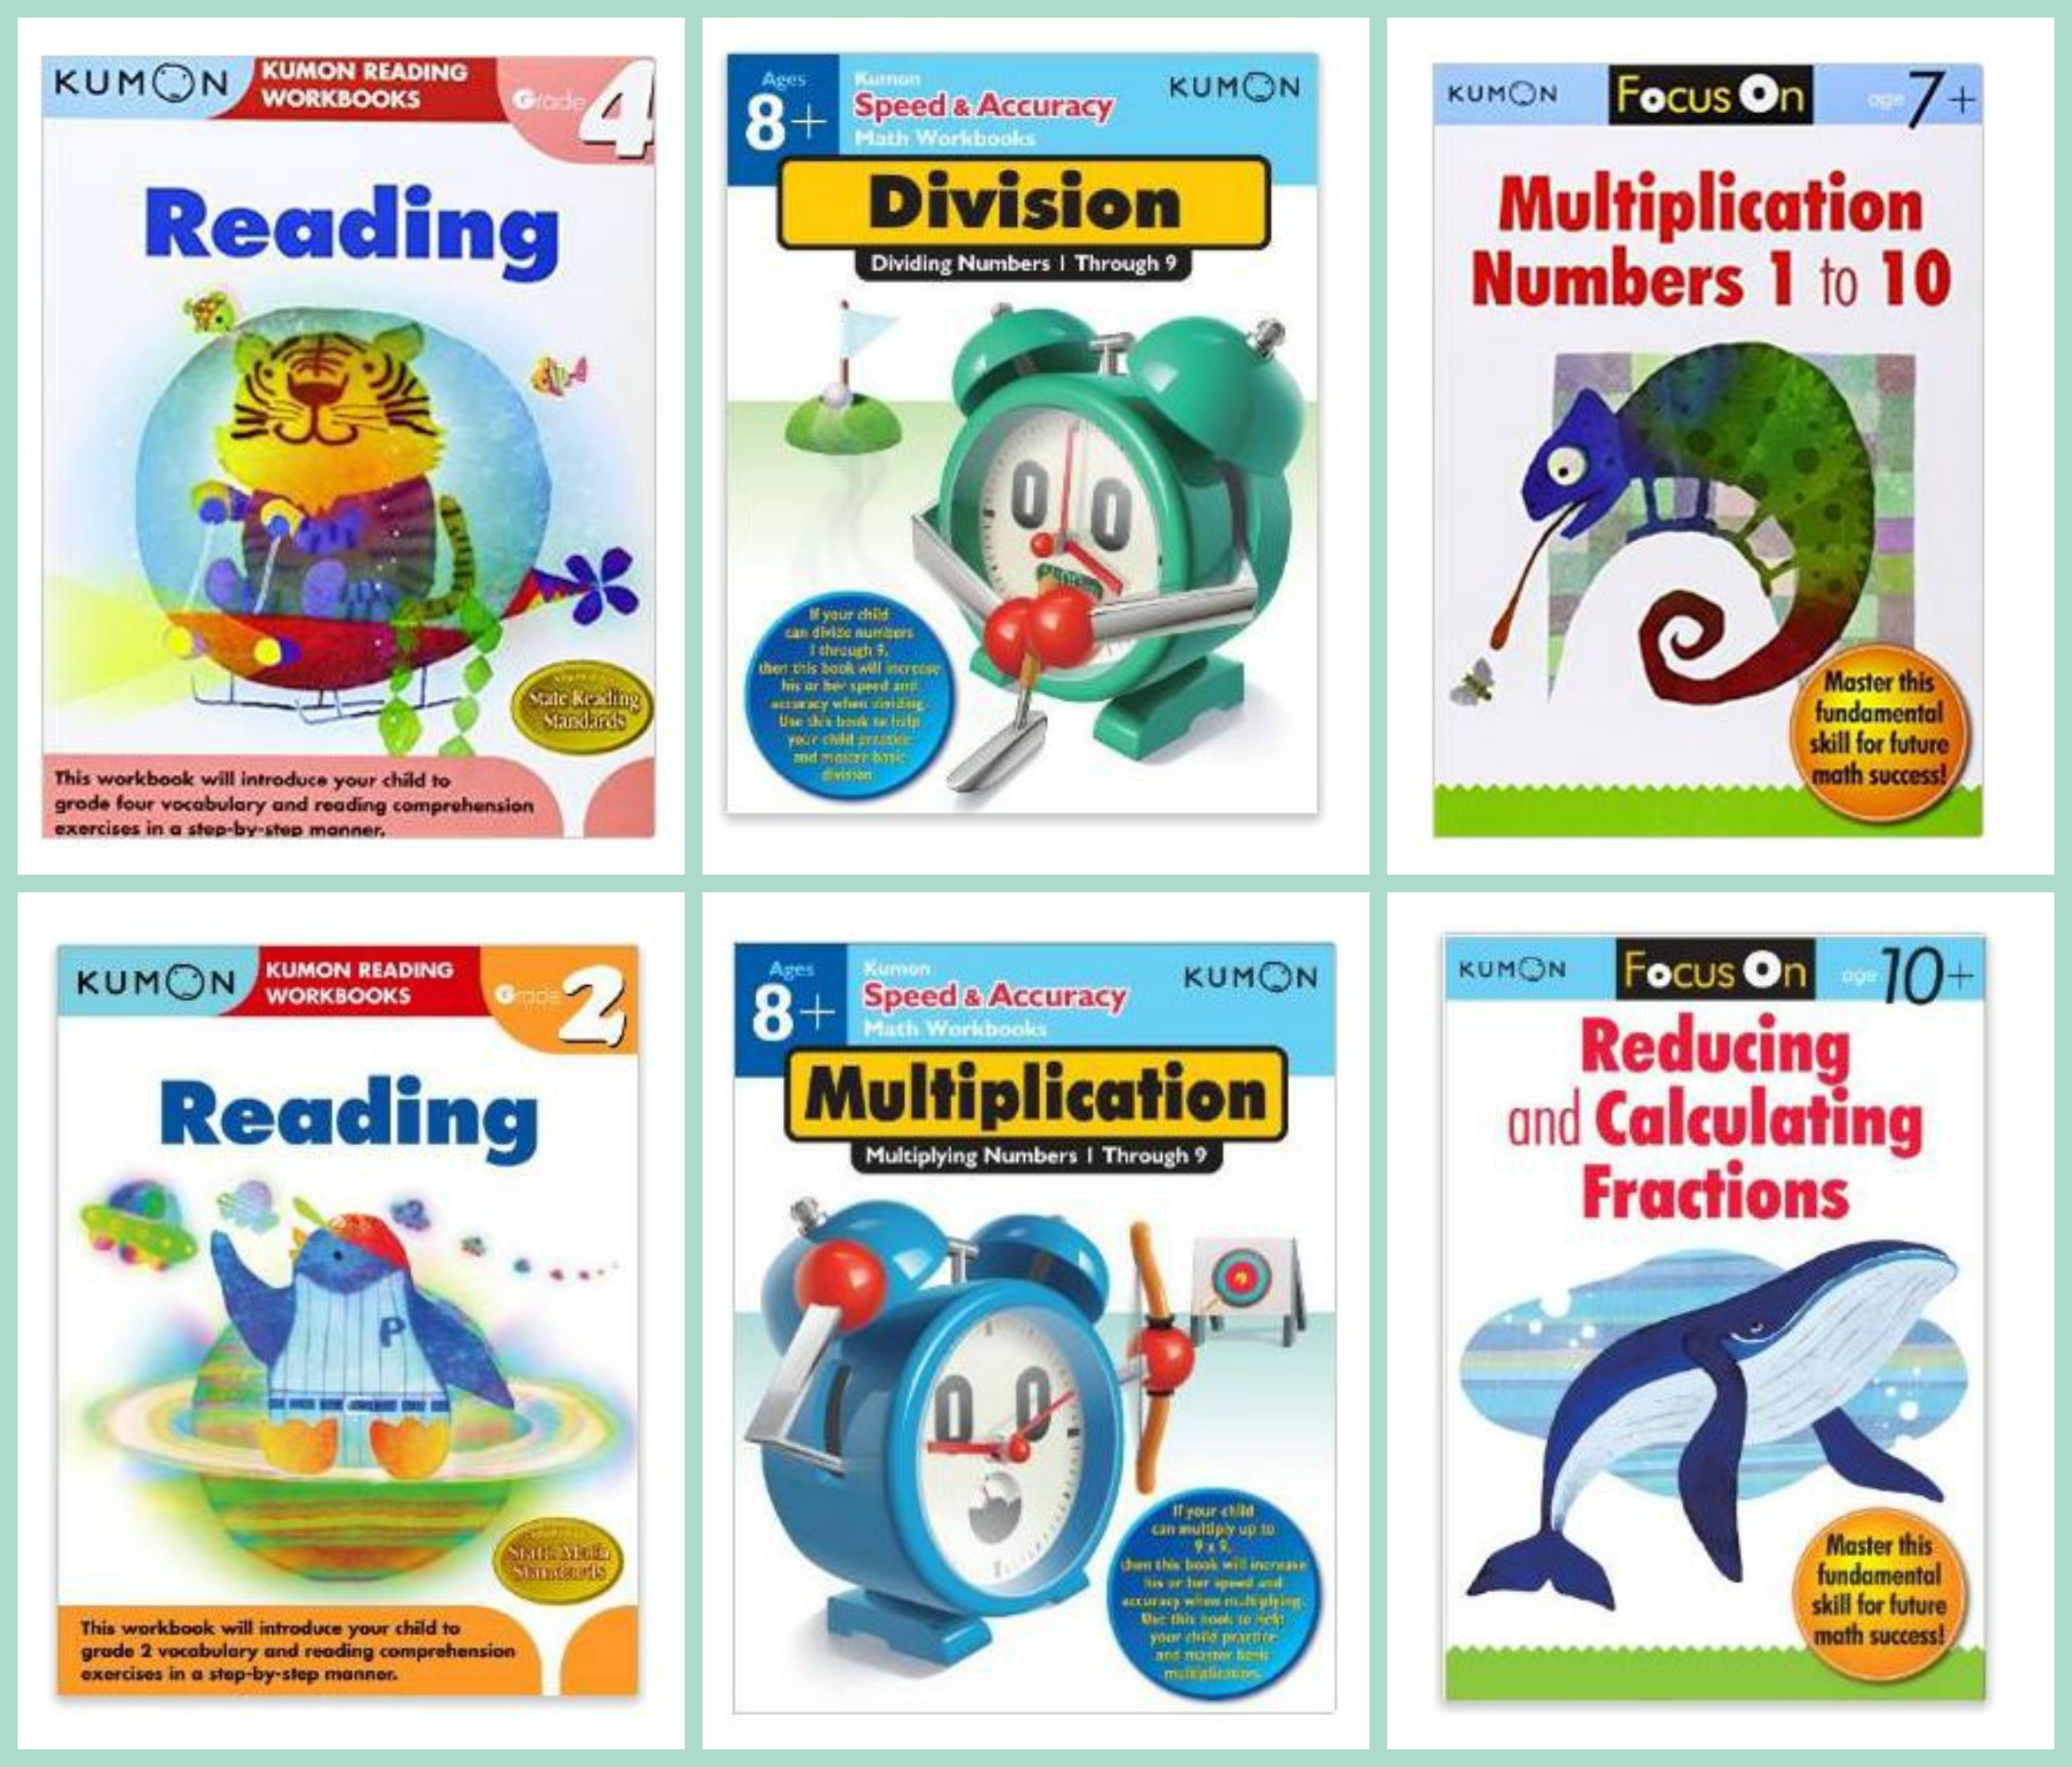 Free Worksheet Kumon Reading Worksheets amazon kumon workbooks starting at 5 95 shipped passionate if you want to give your kids math and reading skills a boost this summer check out selection of highly rated workbooks